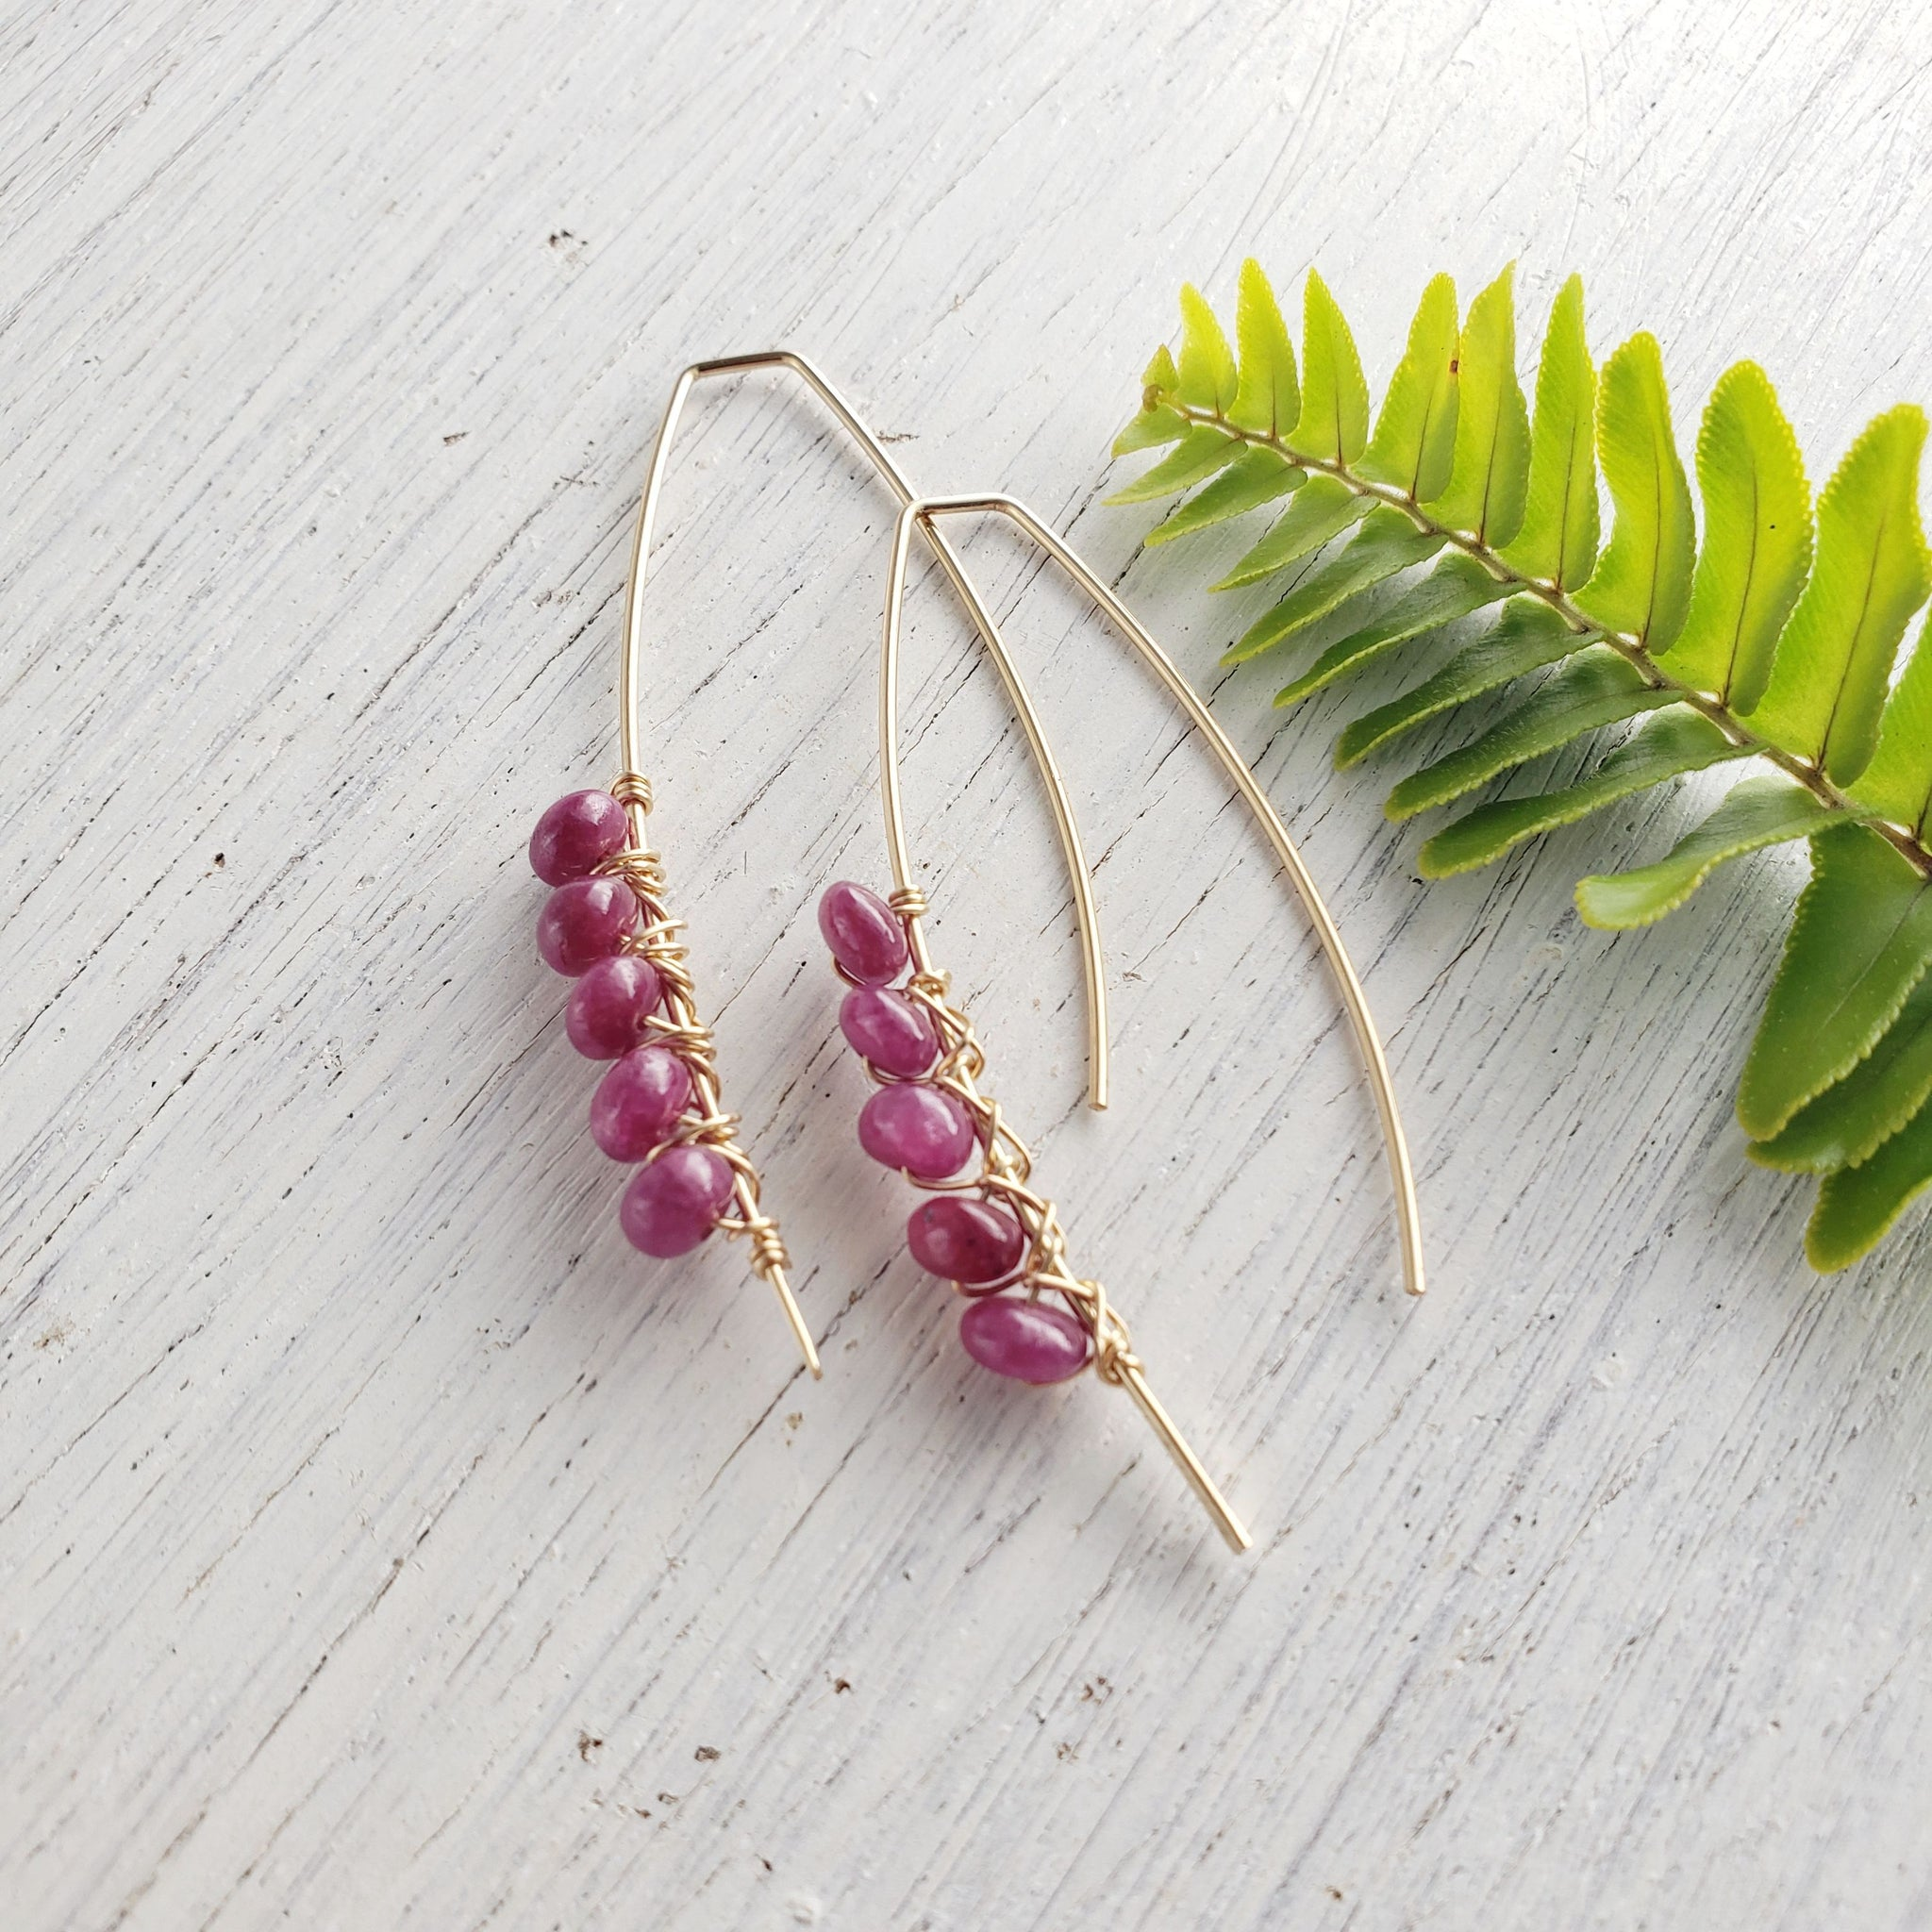 Ruby Gold Earrings - Sati Gems Hawaii Healing Crystal Gemstone Jewelry